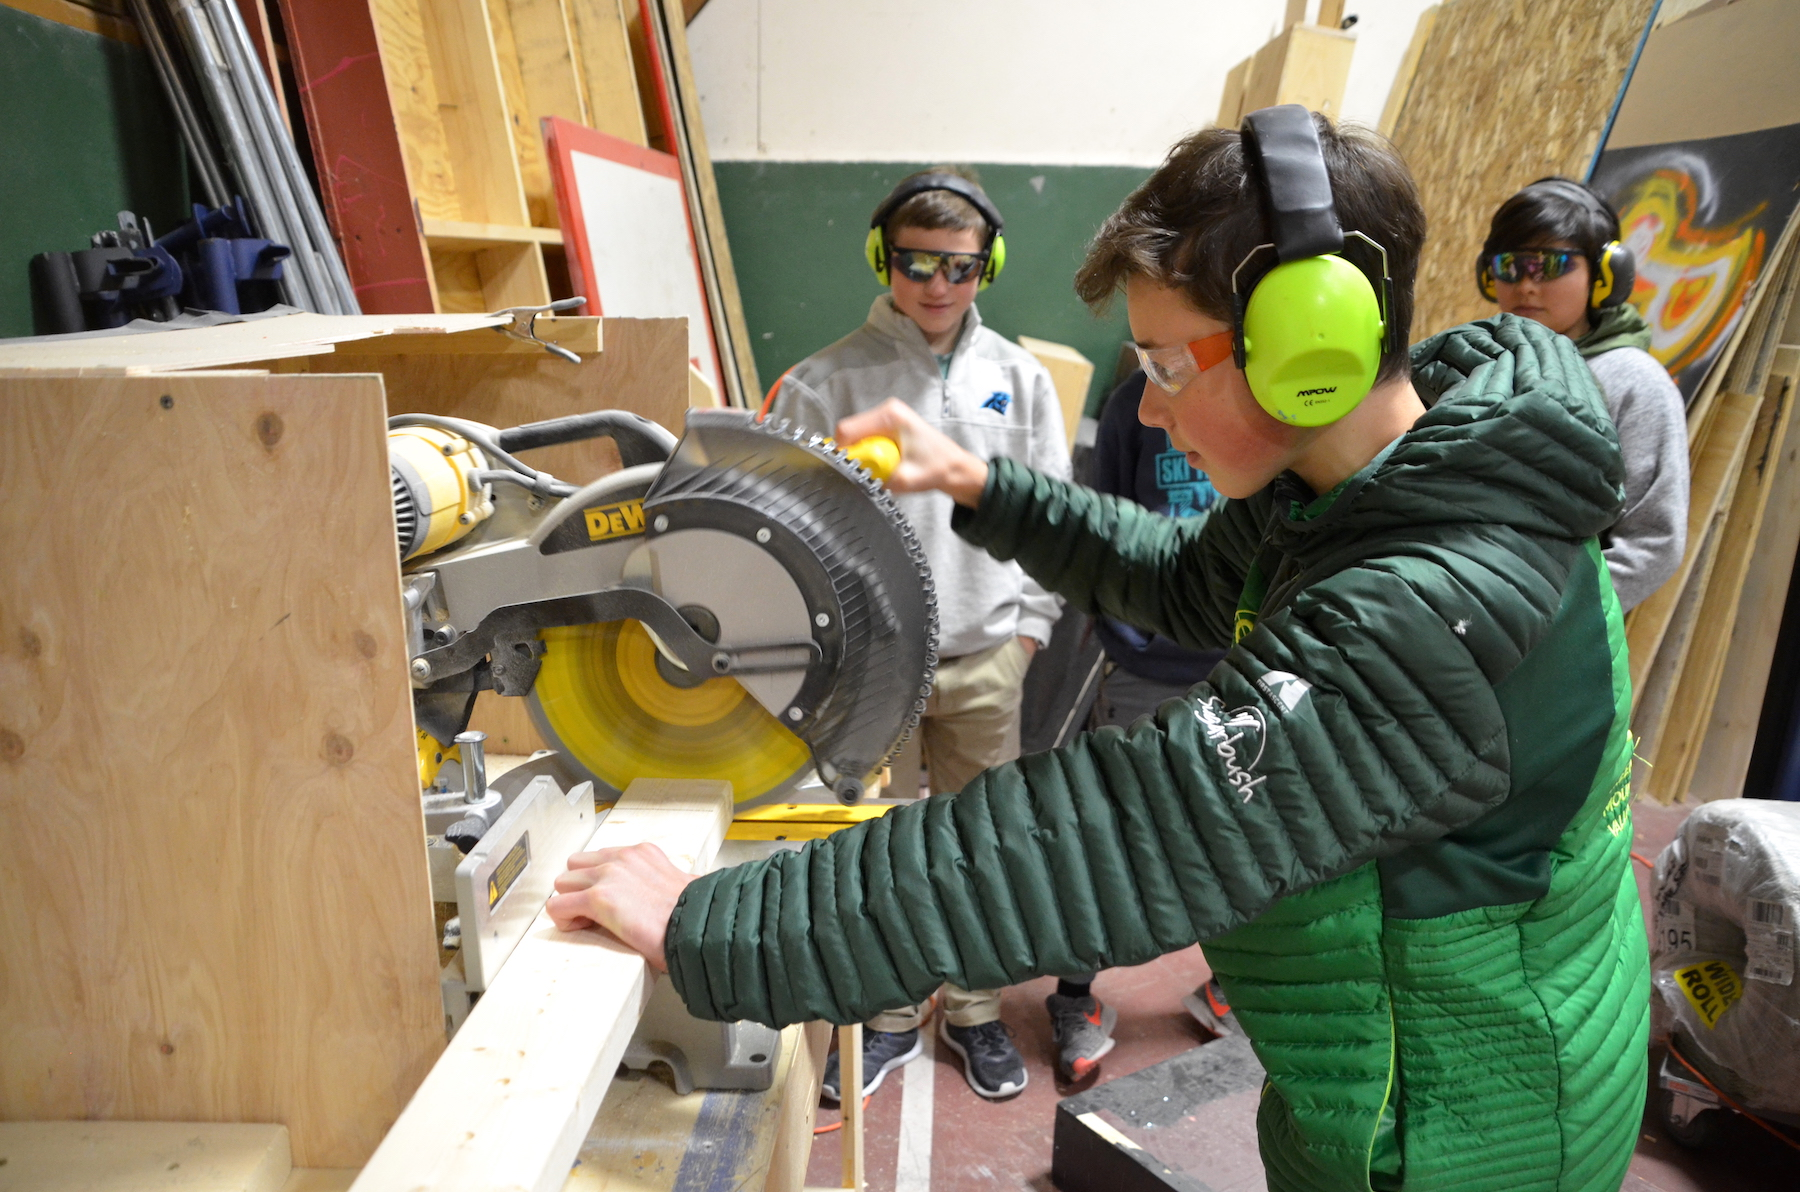 Tabor demonstrating how to make a cut with the miter saw.